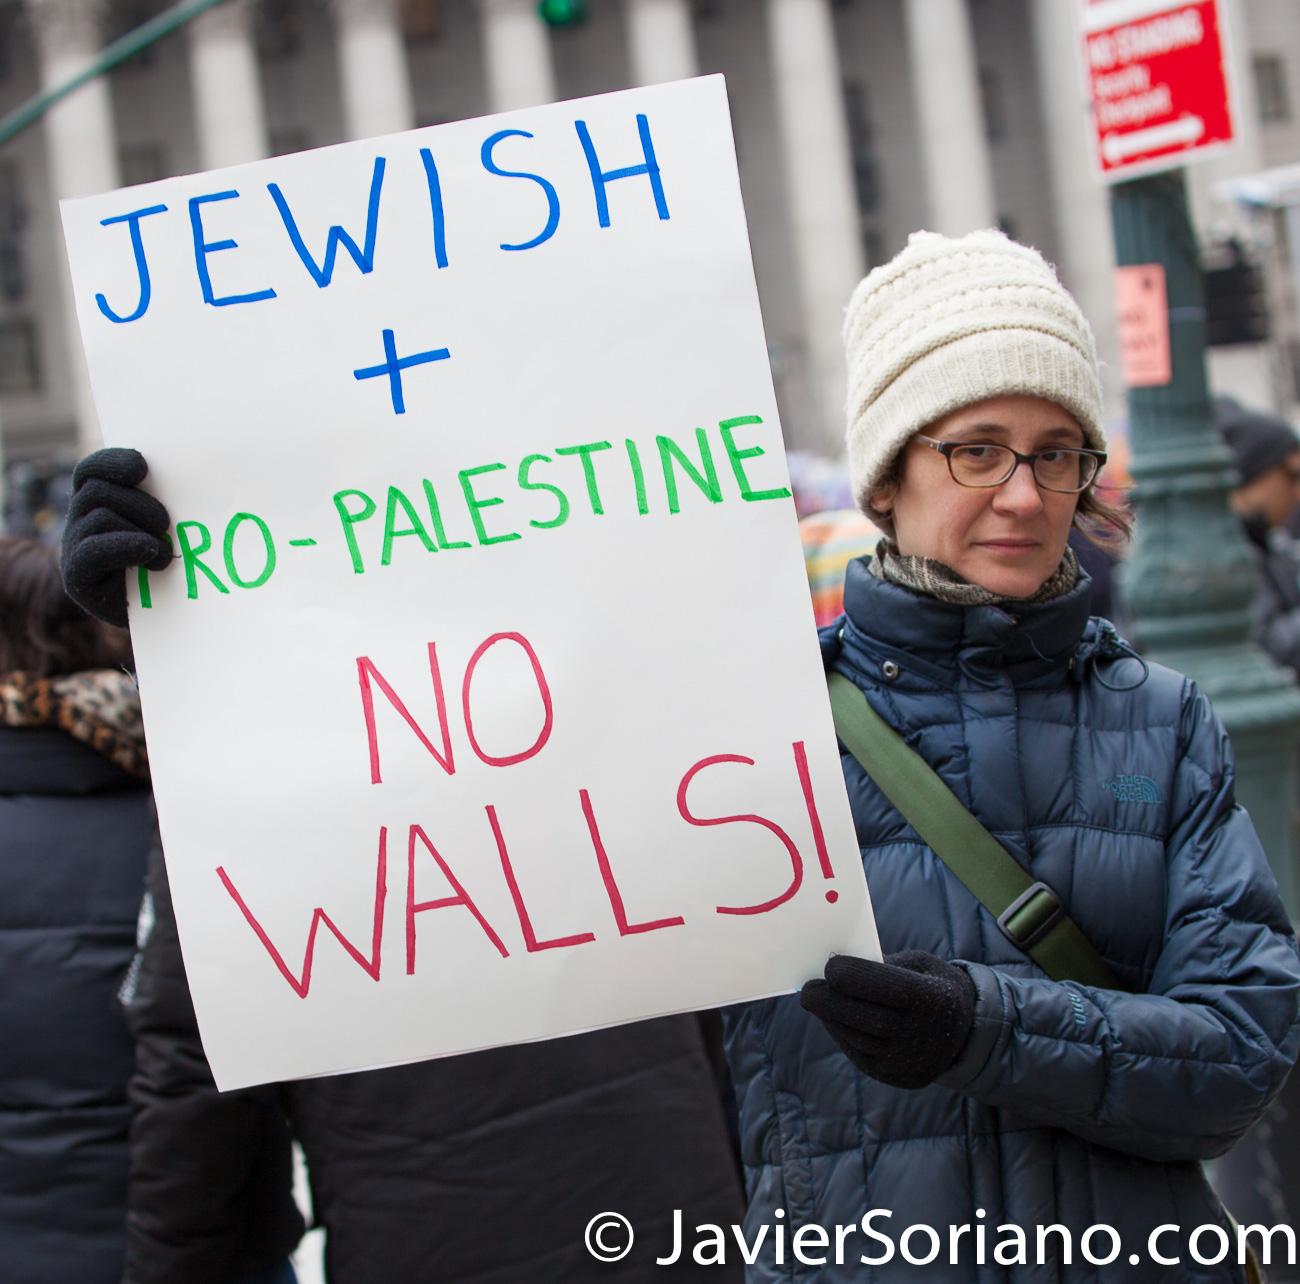 Foley Square, Manhattan. New York City. The third annual Women's March was on Saturday, January 19, 2019. Hundreds of people attended the rally at Foley Square Park in suppport of women's rights. This woman is Jewish and she is pro-Palestine. She does not want walls. Photo by Javier Soriano/JavierSoriano.com